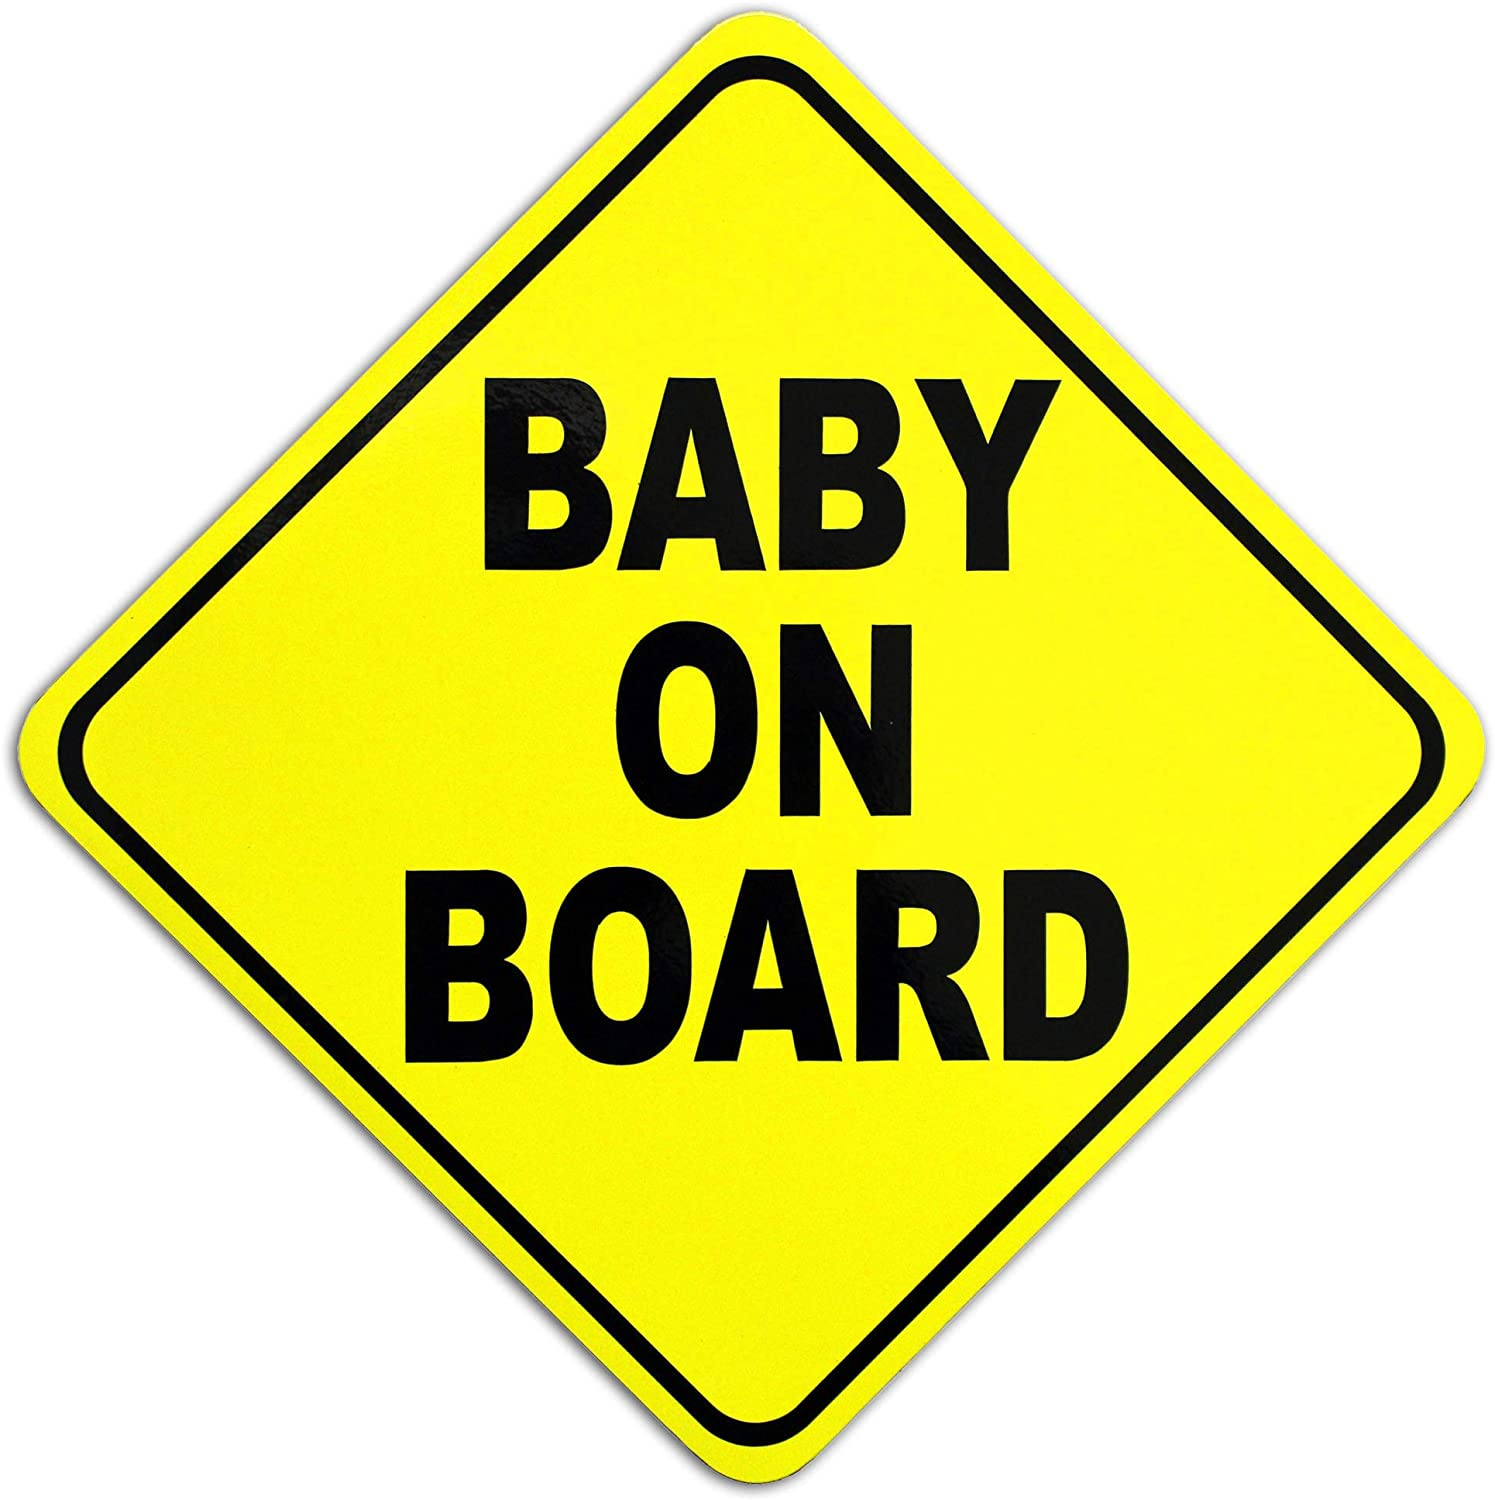 15 x 15 cm Baby On Board Magnetic Car Sign Magnetic Baby on Board